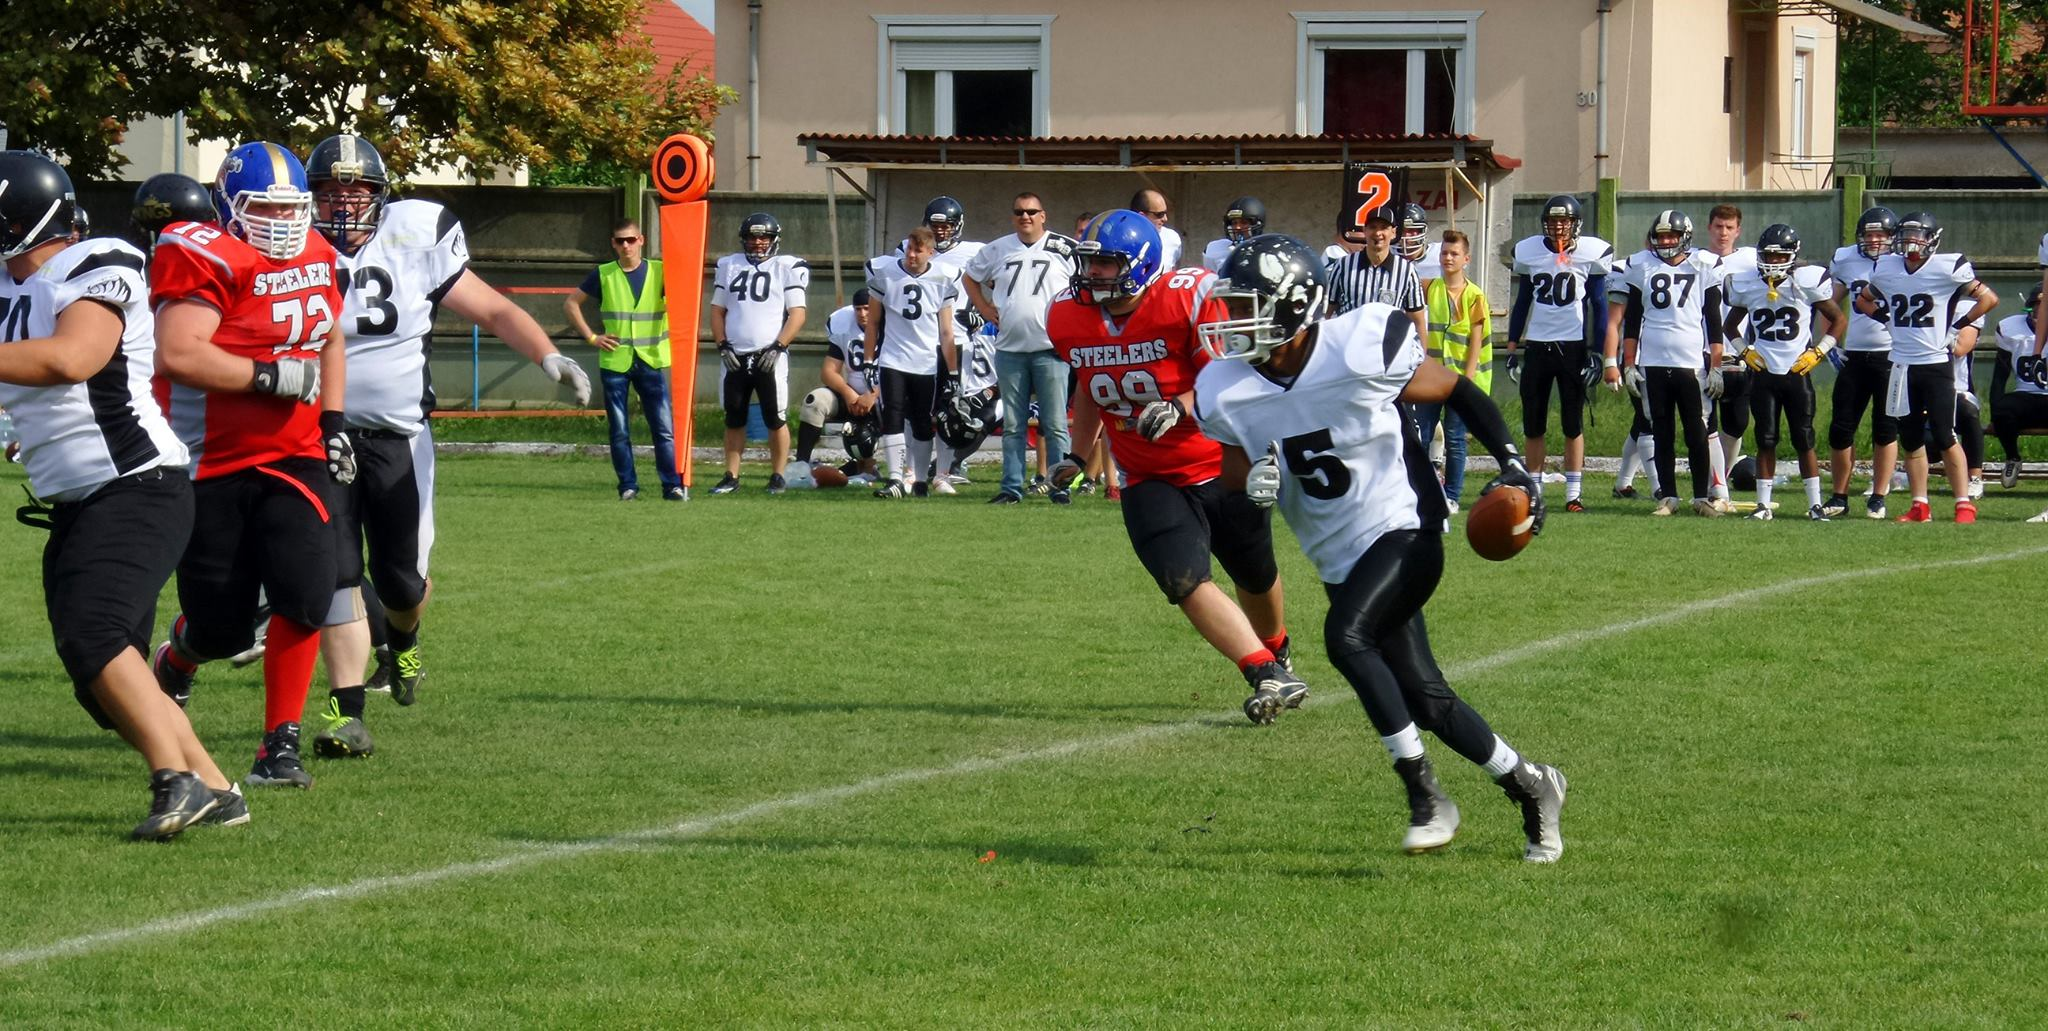 Miskolc Steelers vs. Nyigerhaza Steelers - foto Steelers FB-side